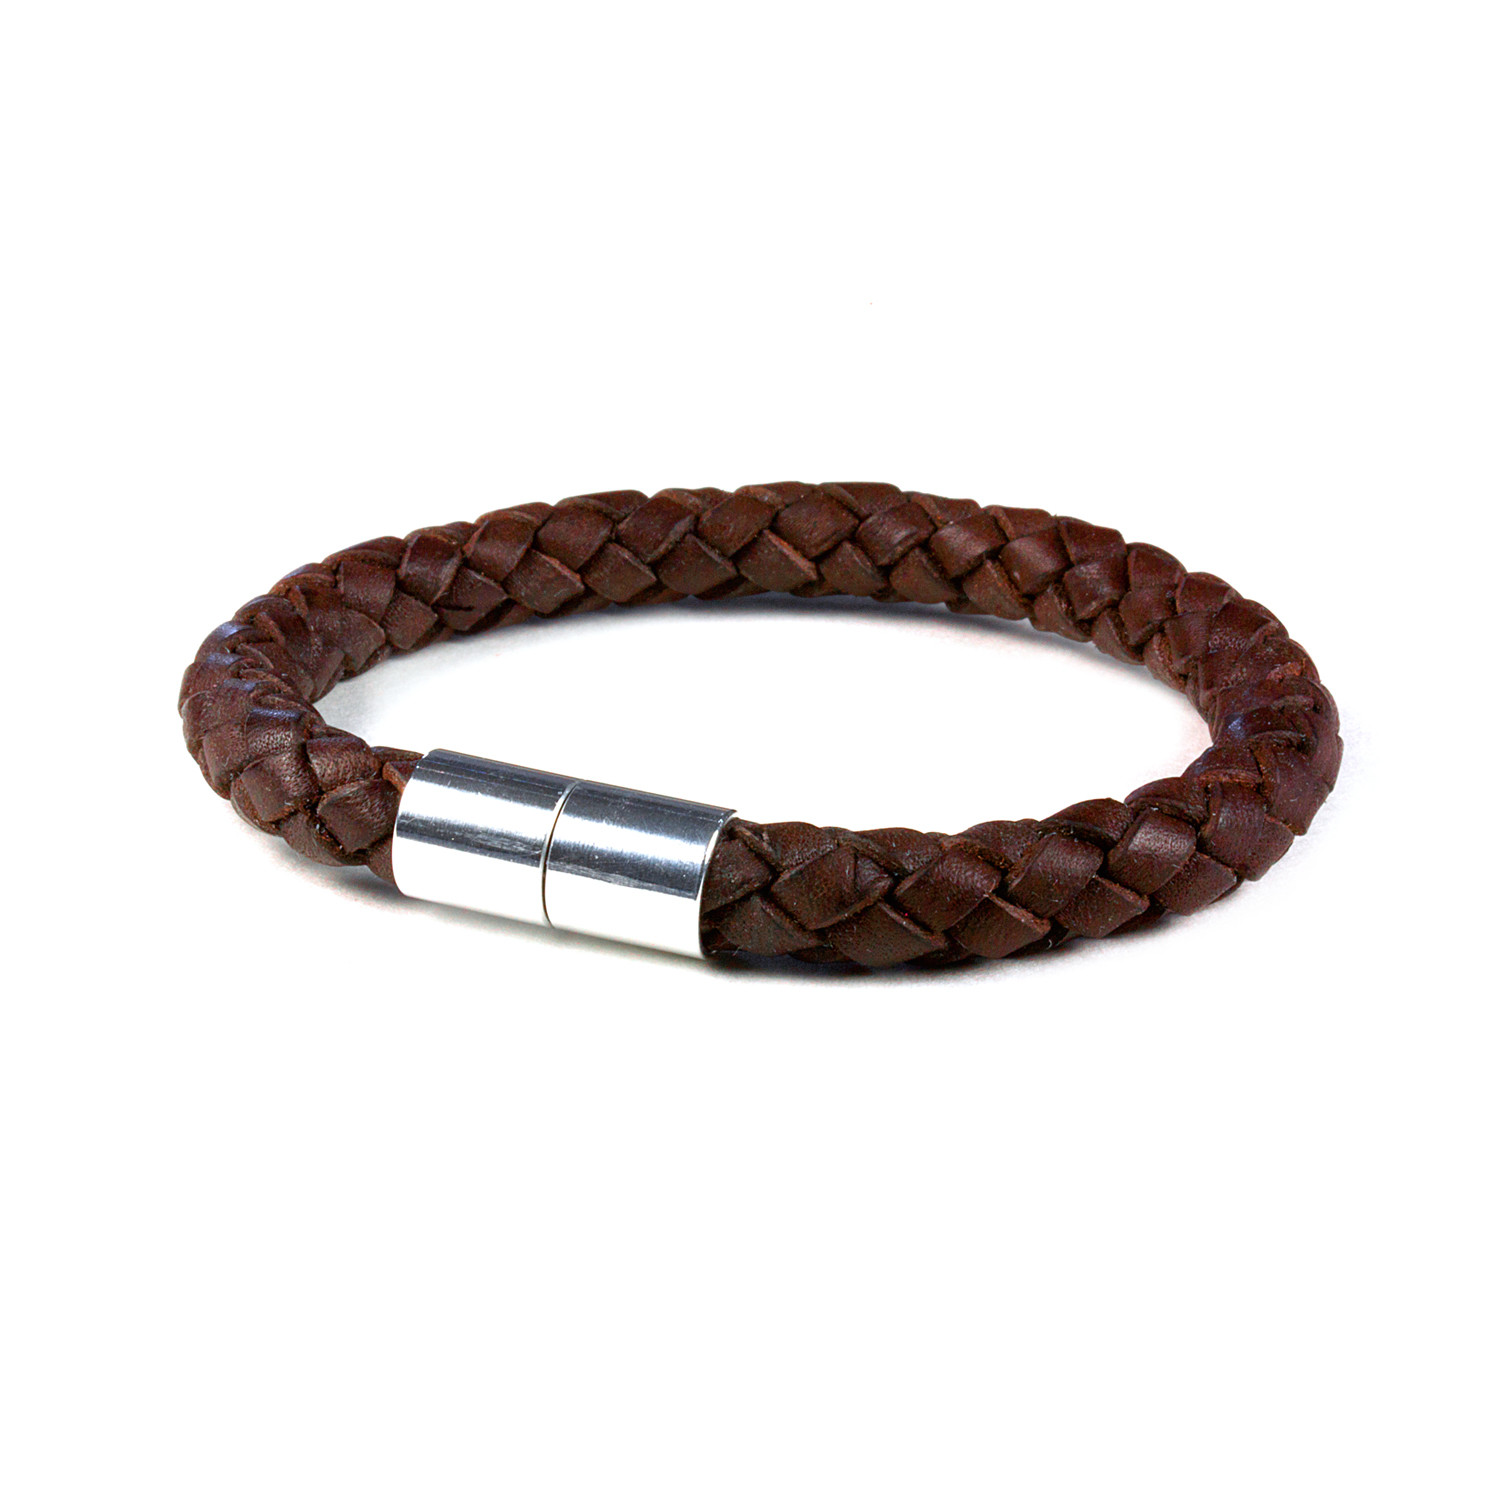 Pro Leather Magnet Therapy Bracelet Dark Brown 8mm